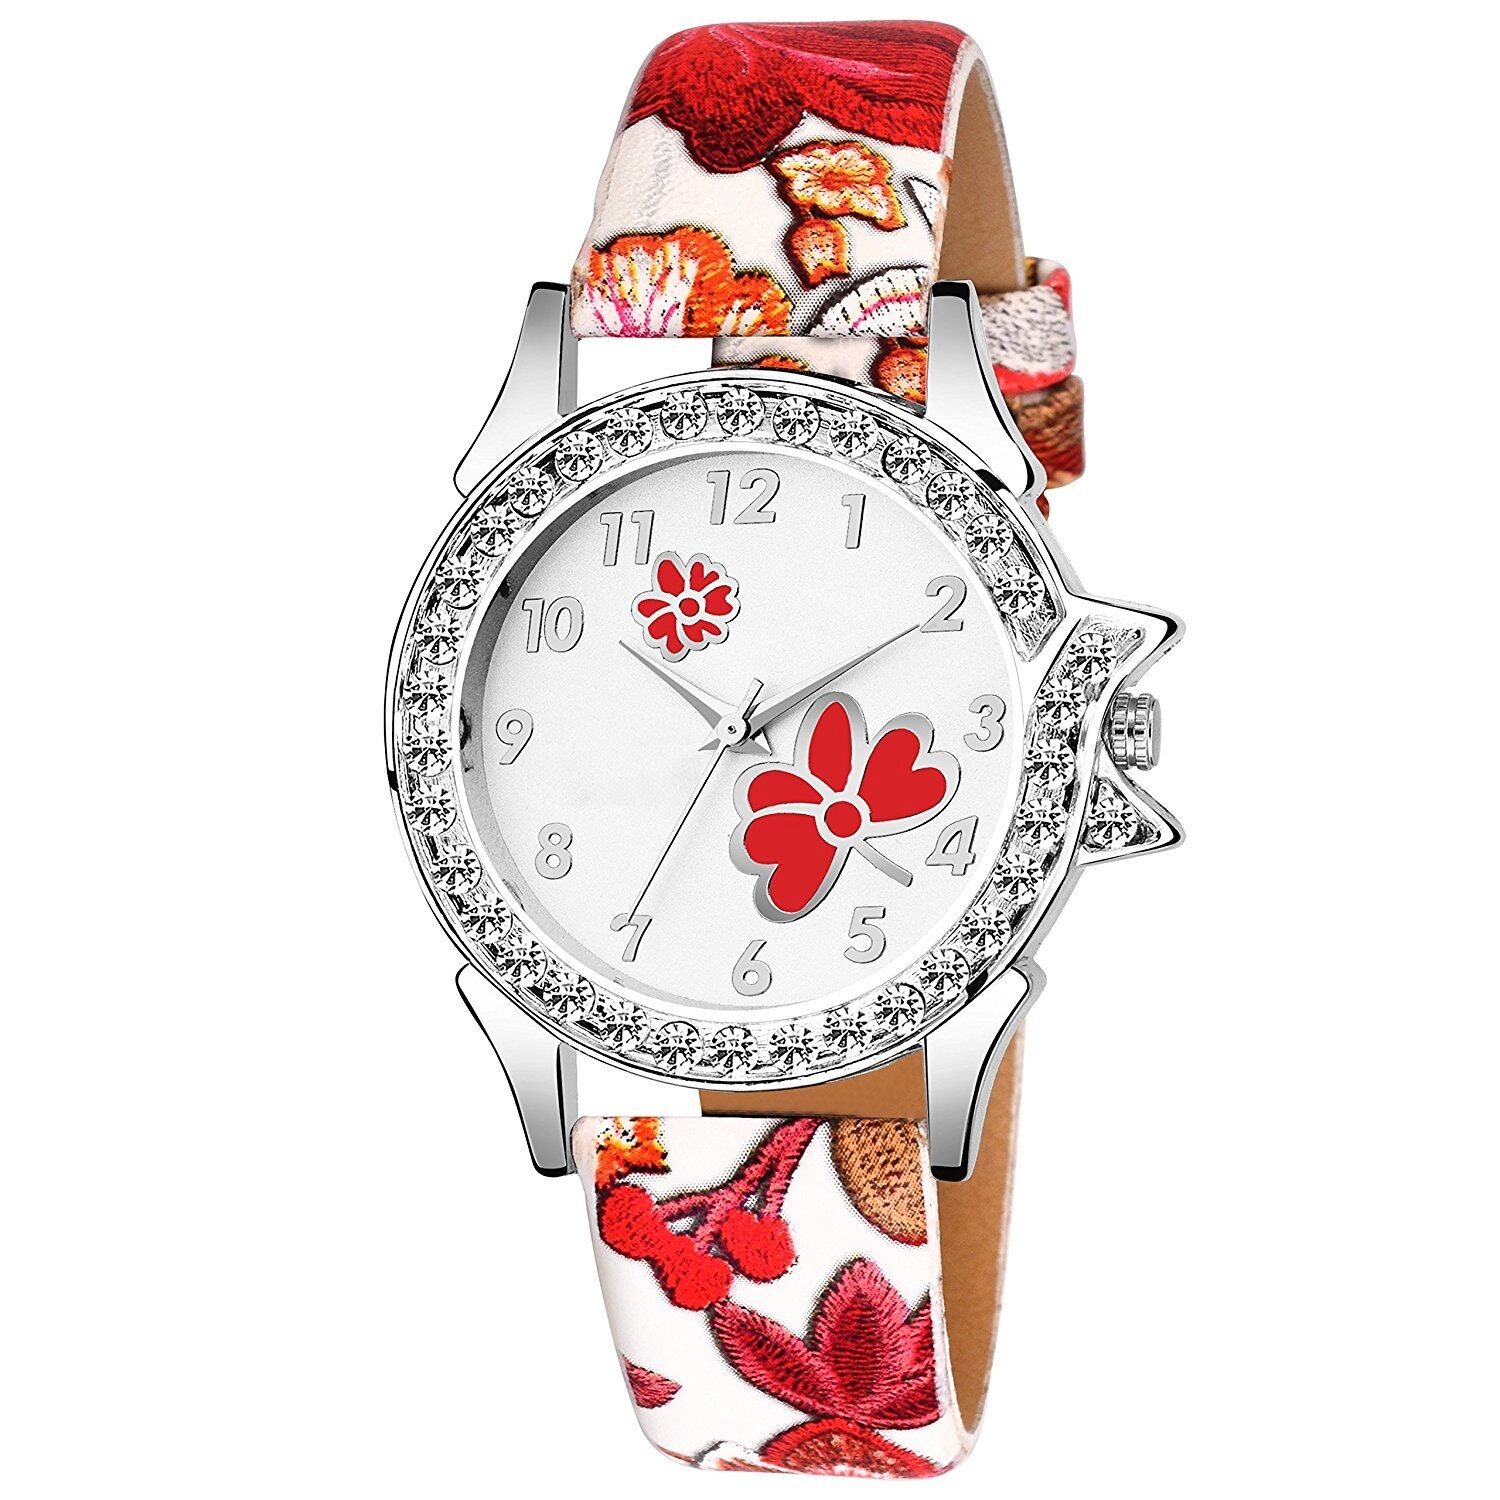 Senjarya Times Stylish Diamond Studded Red  Leather Analog Watch For Girls And Ladies